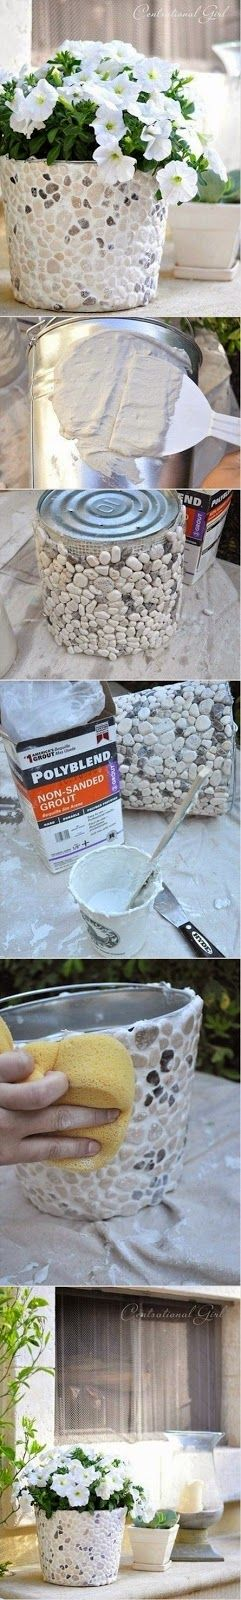 DIY Rock Covered Bucket!